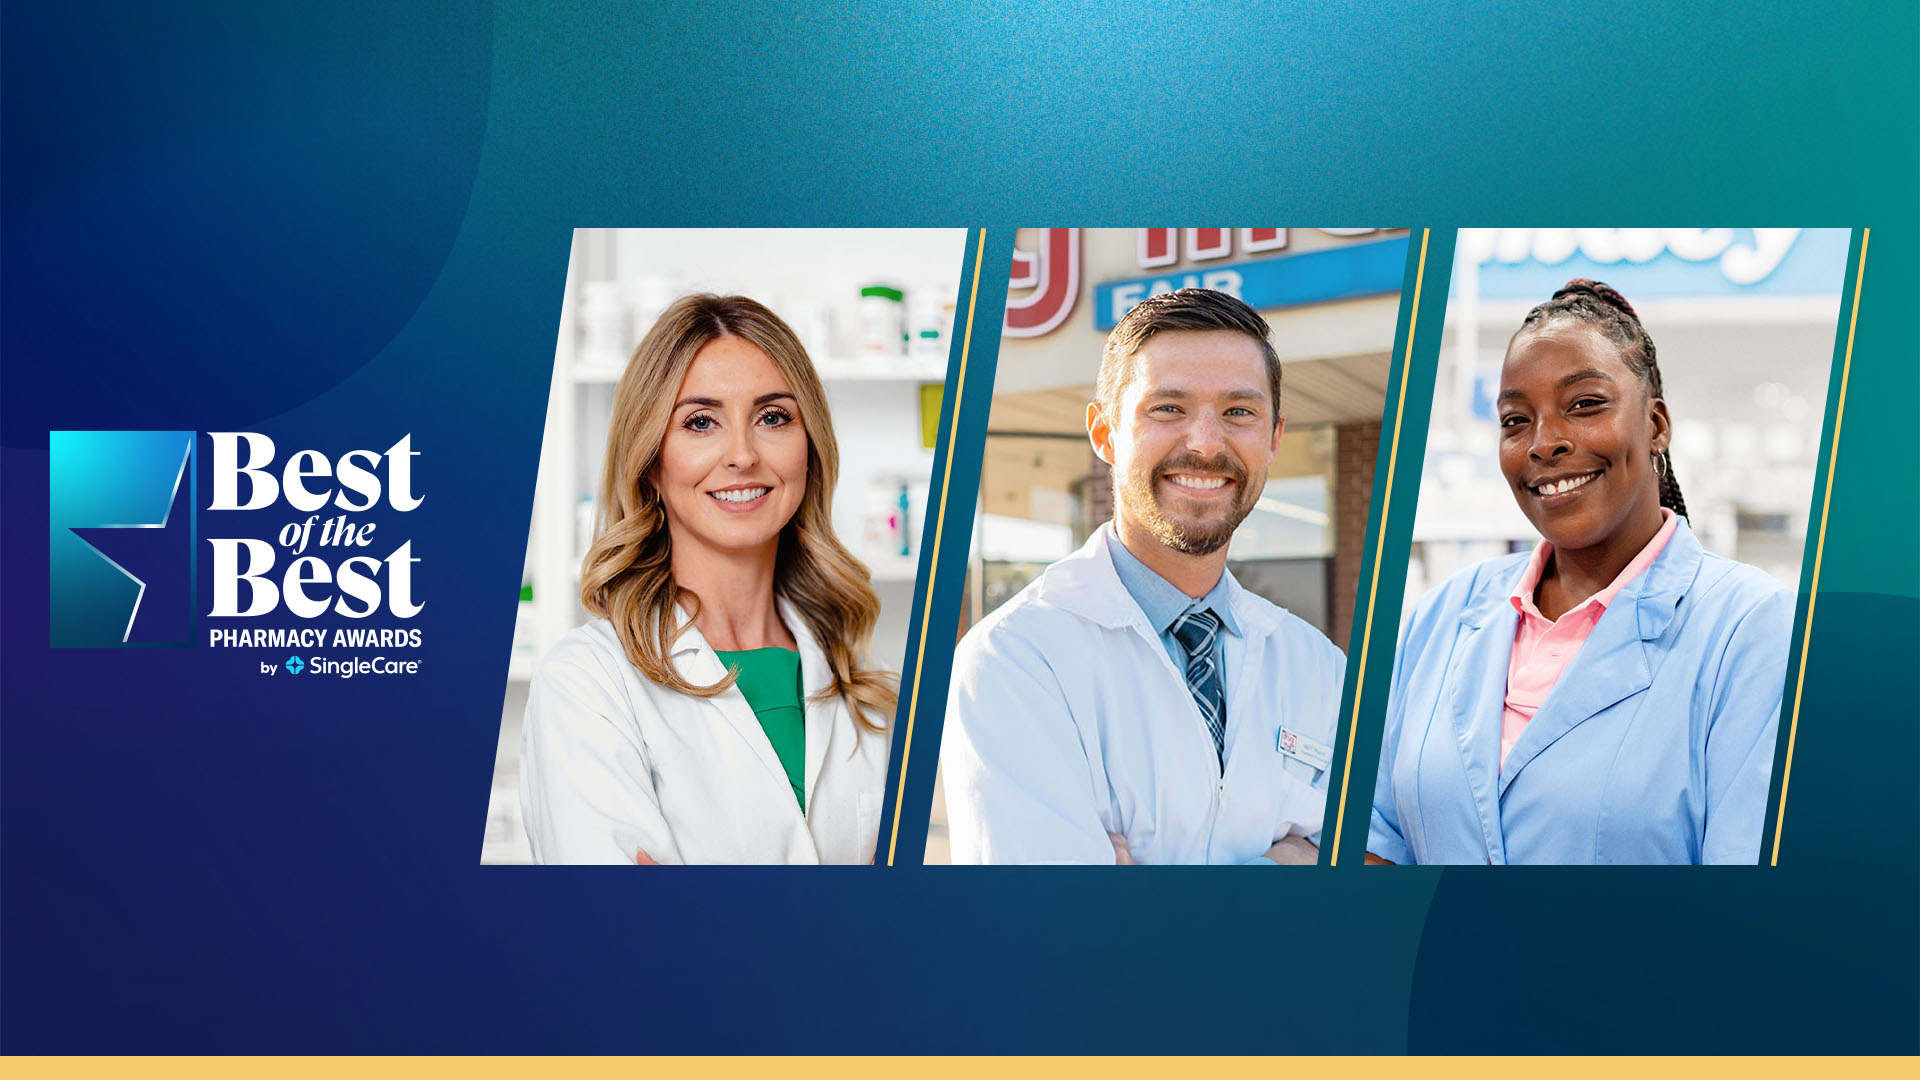 SingleCare Announces Third Annual 'Best of the Best Pharmacy Awards' Recognizing 25 of the Nation's Top Pharmacists, Techs, and Teams